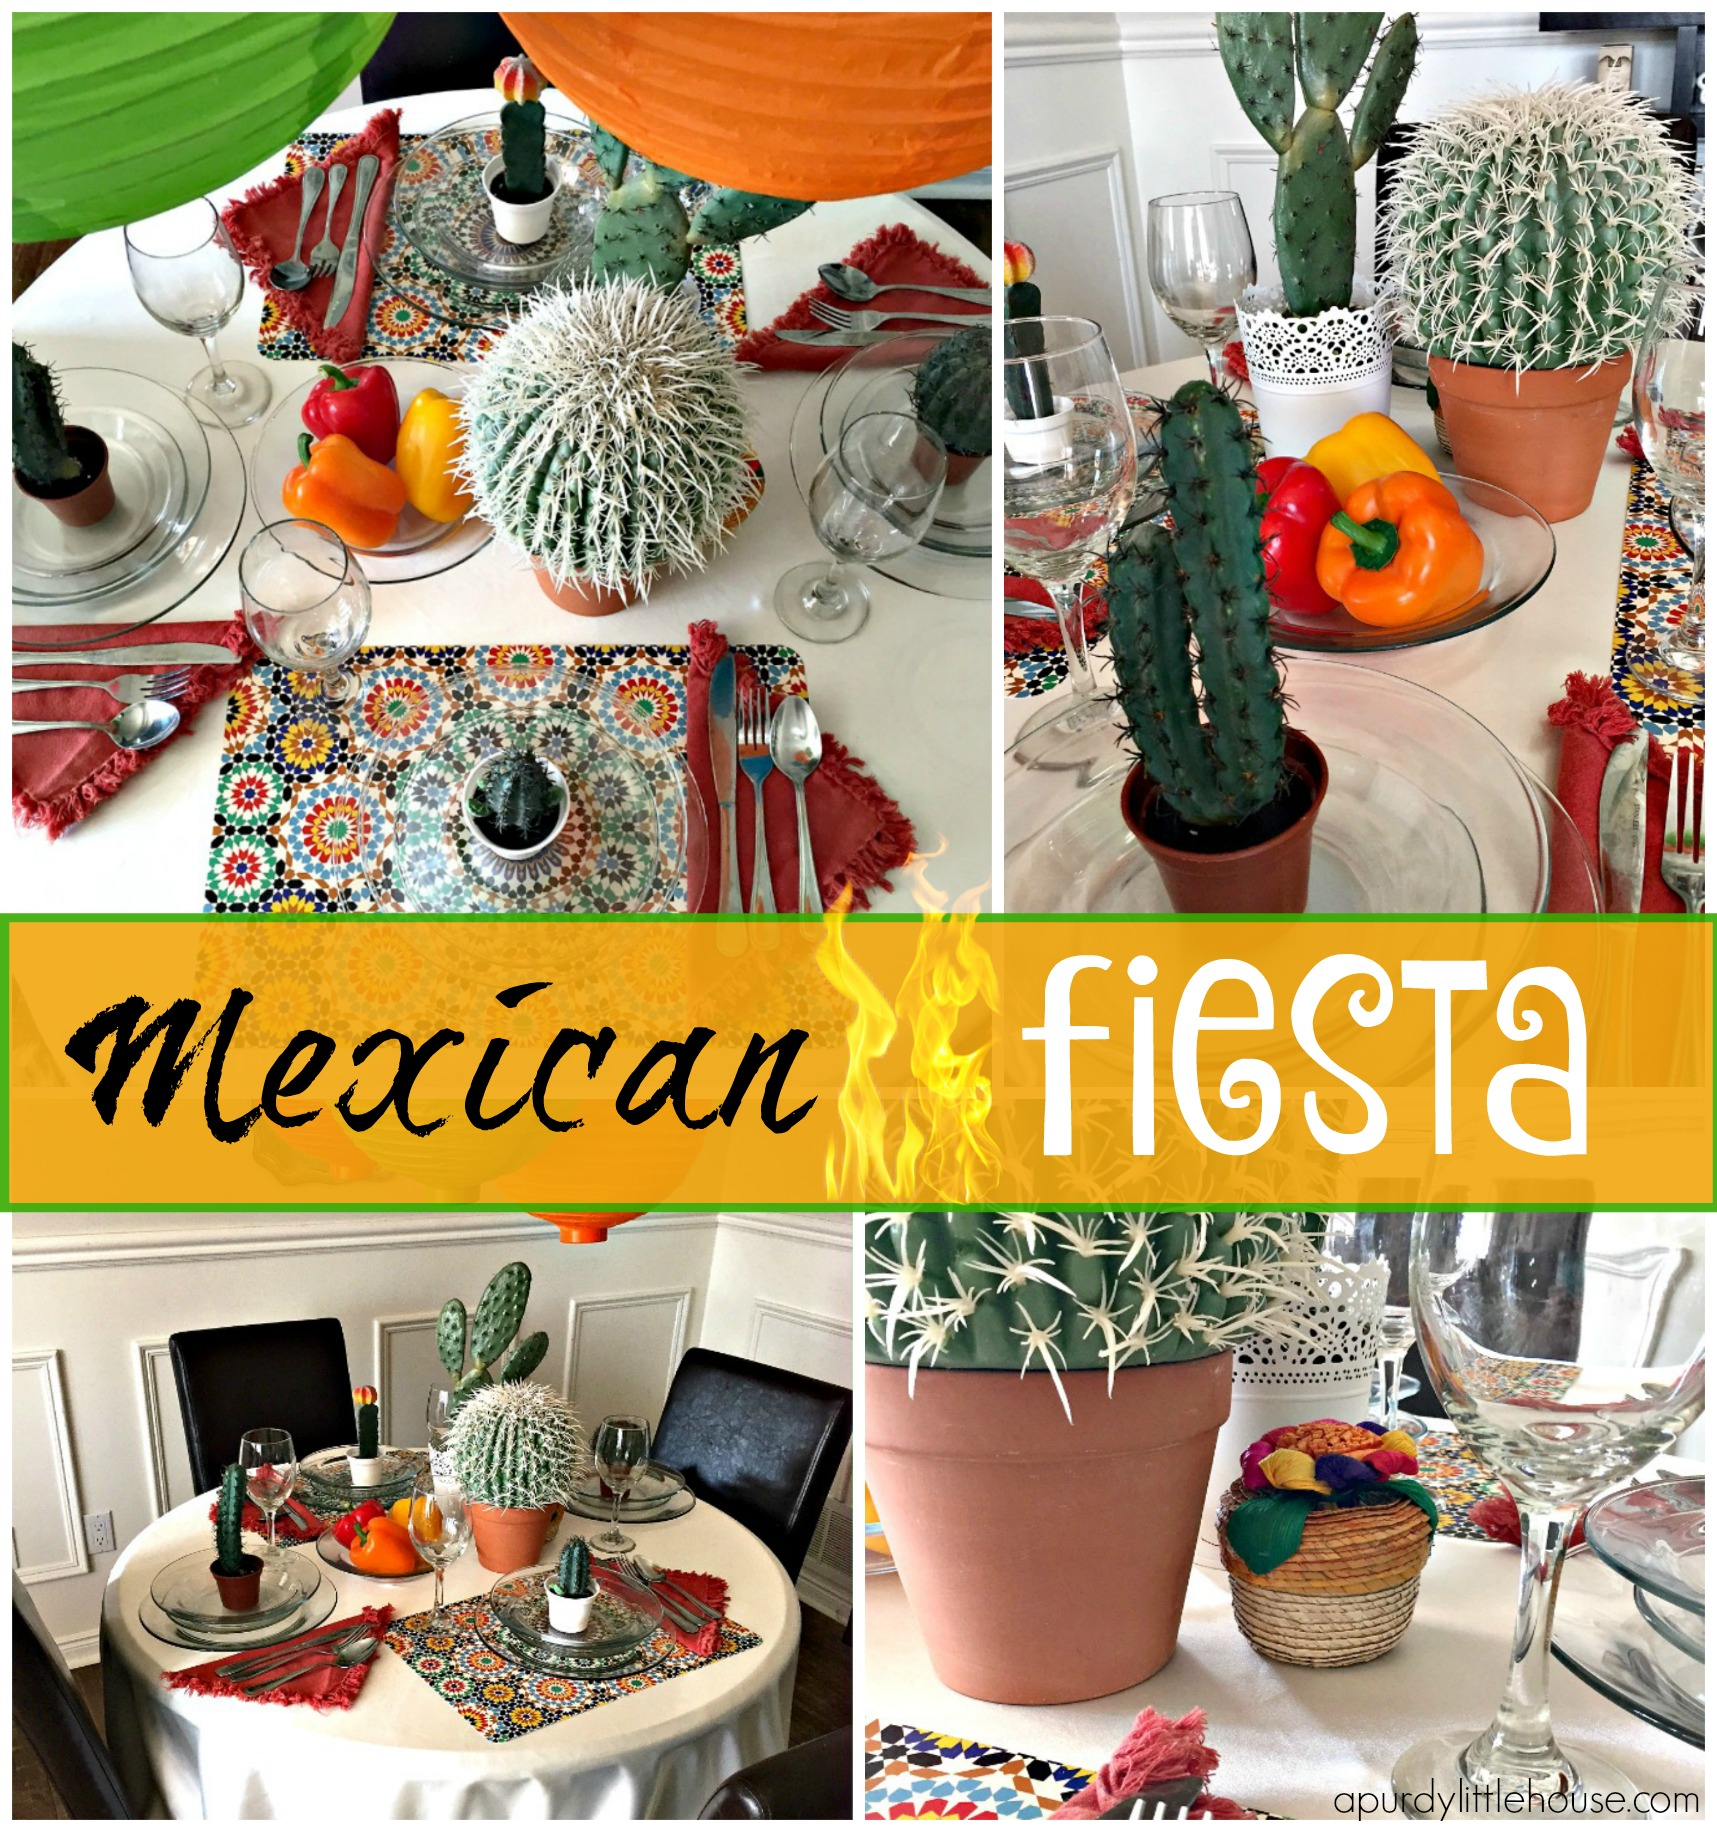 Mexican FiestaTable Setting for a Mexican themed dinner Mexican food table setting apurdylittlehouse.com  sc 1 st  A Purdy Little House & Mexican Fiesta Table Setting - a purdy little house